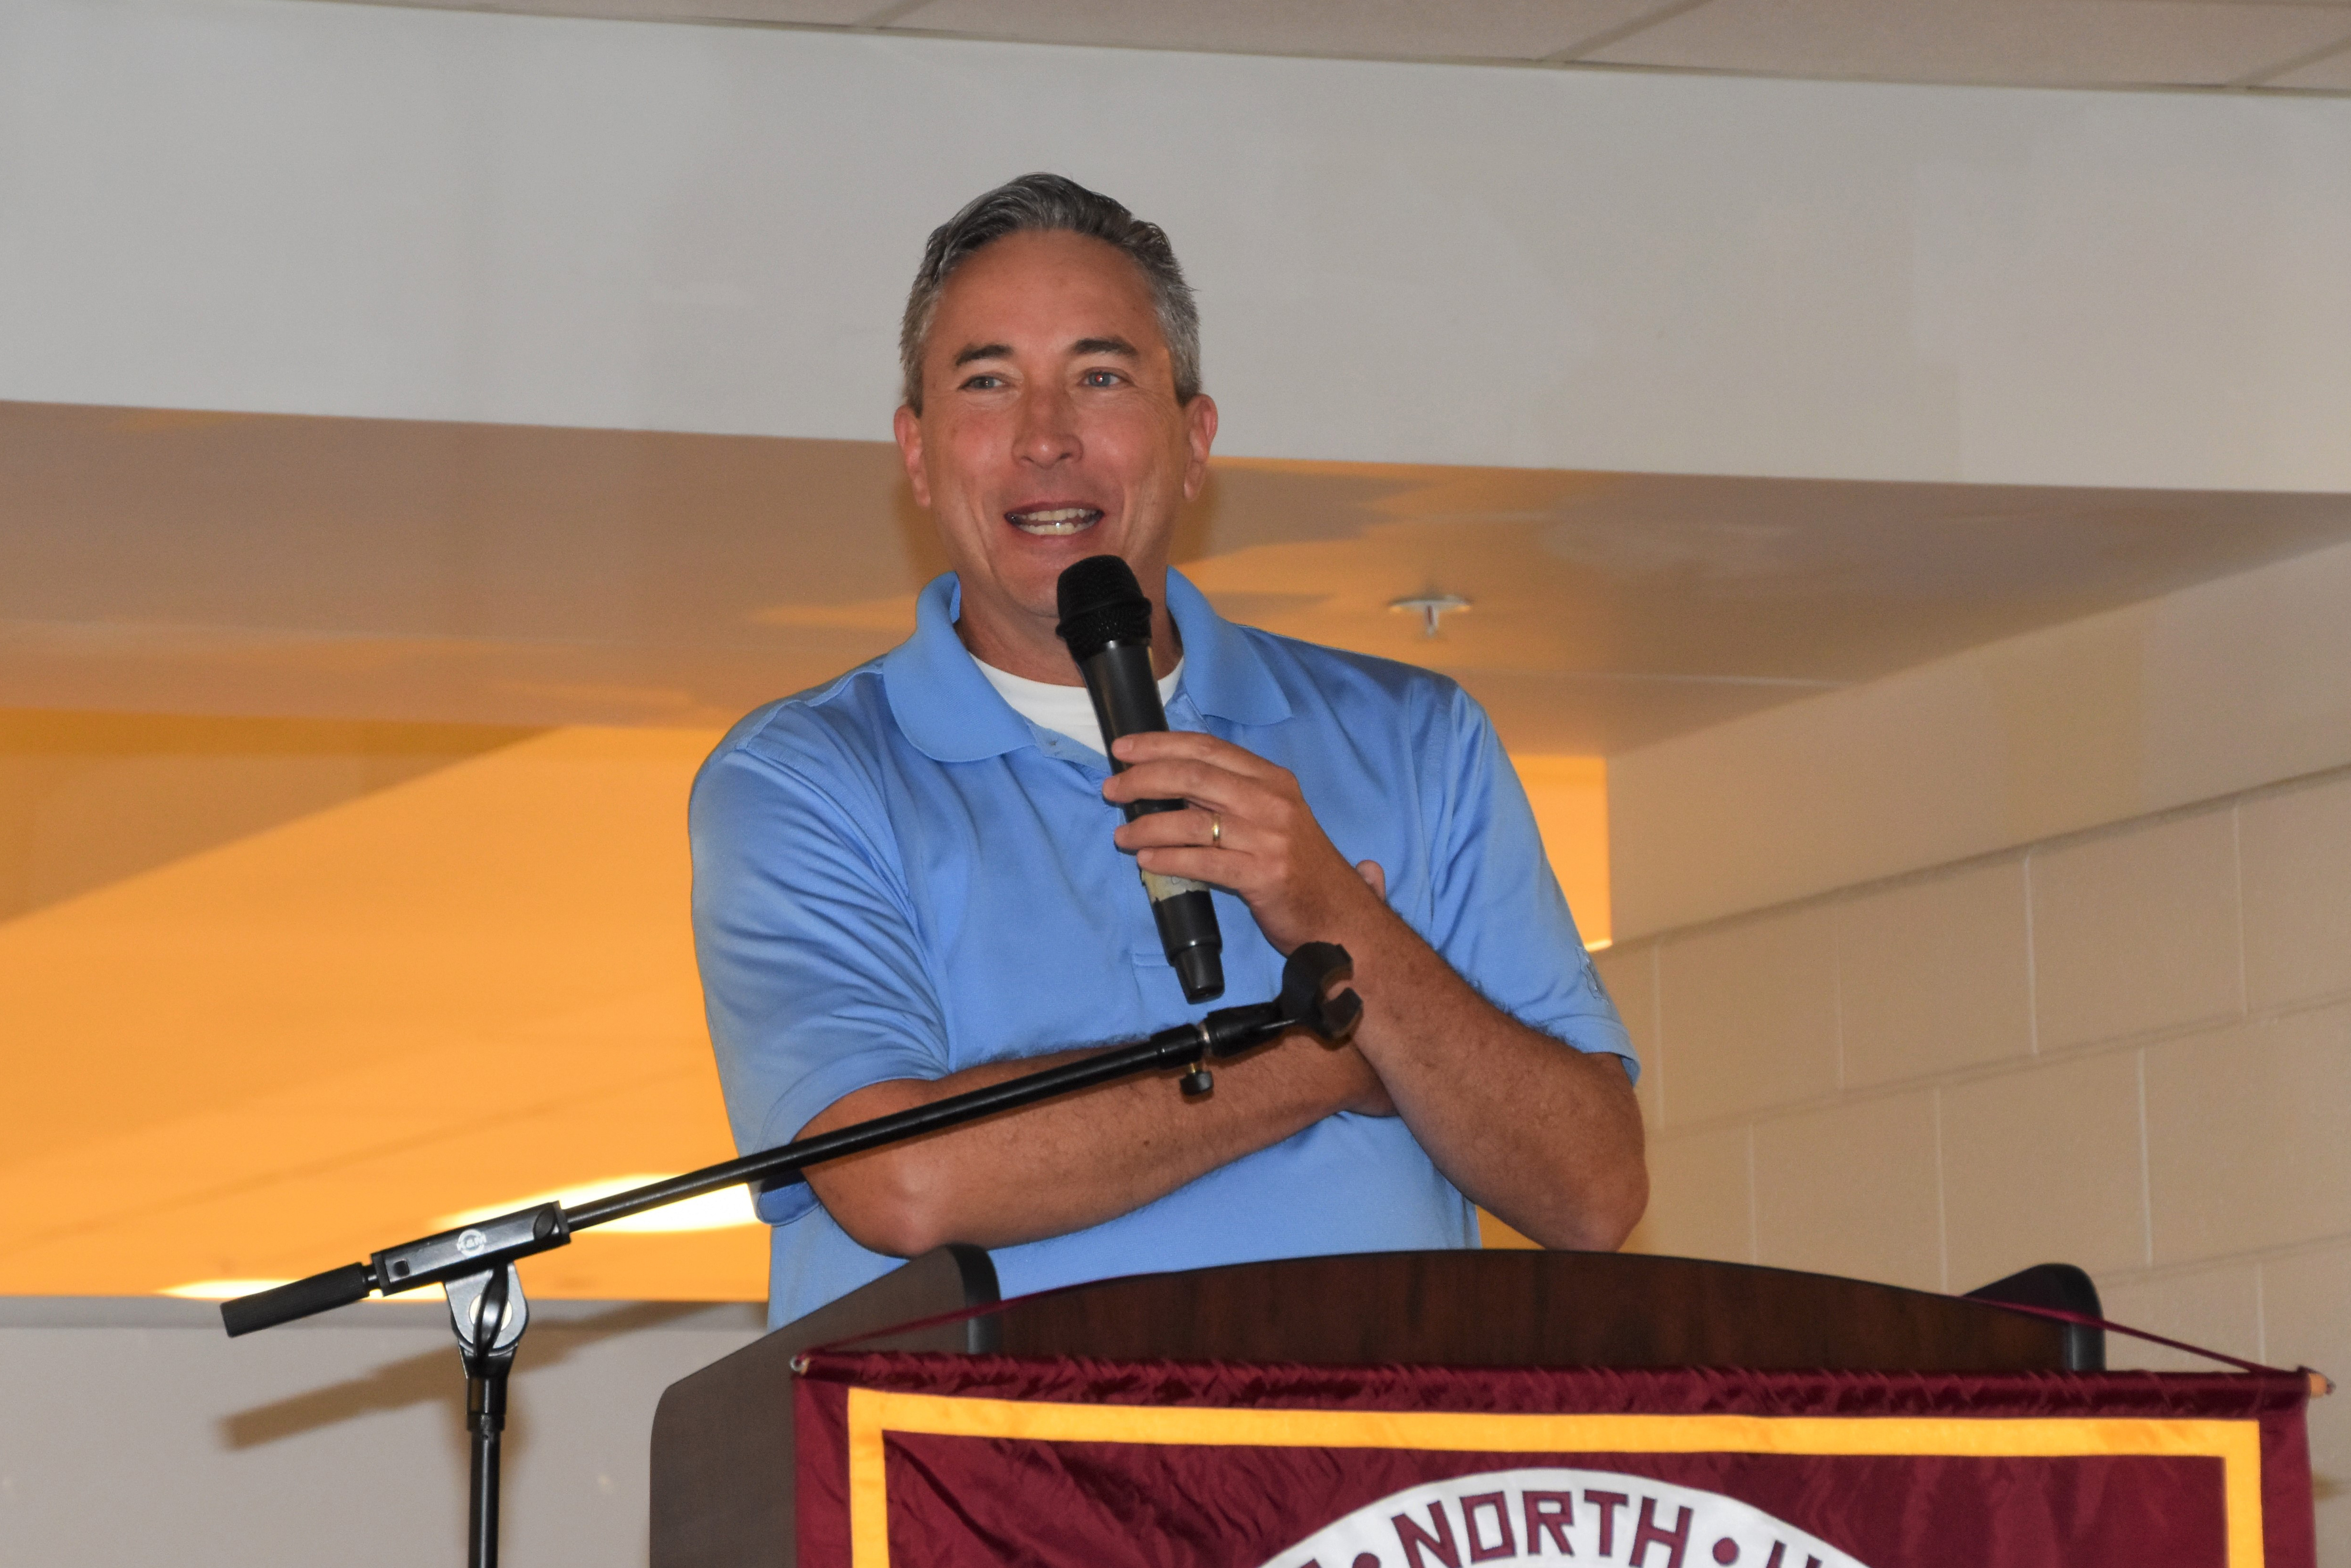 Joe Meyer, featured speaker at Westerville North High School